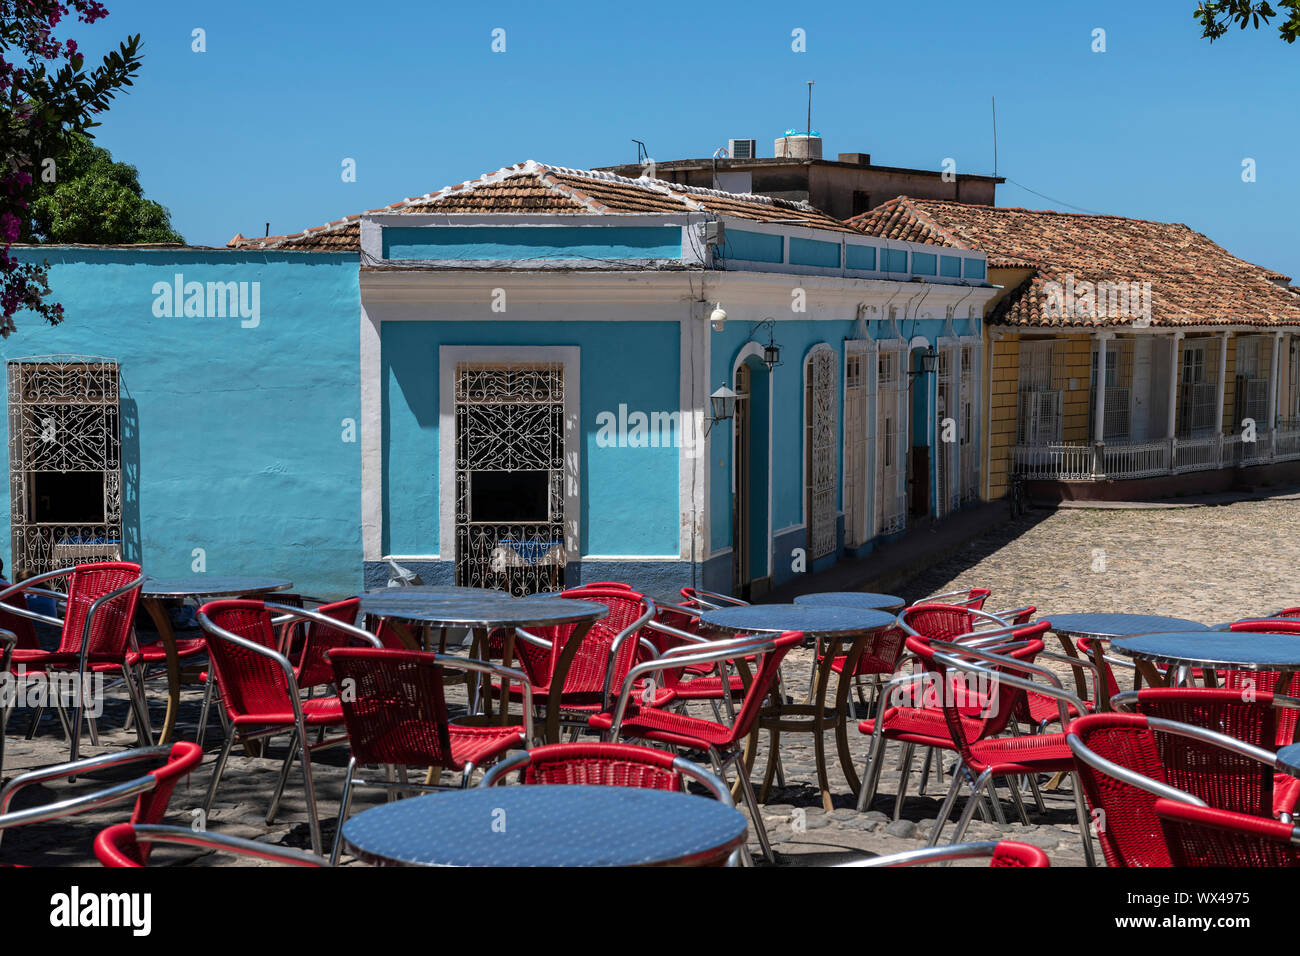 The Spanish colonial architecture of the Plaza Mayor in Trinidad, Cuba. Stock Photo